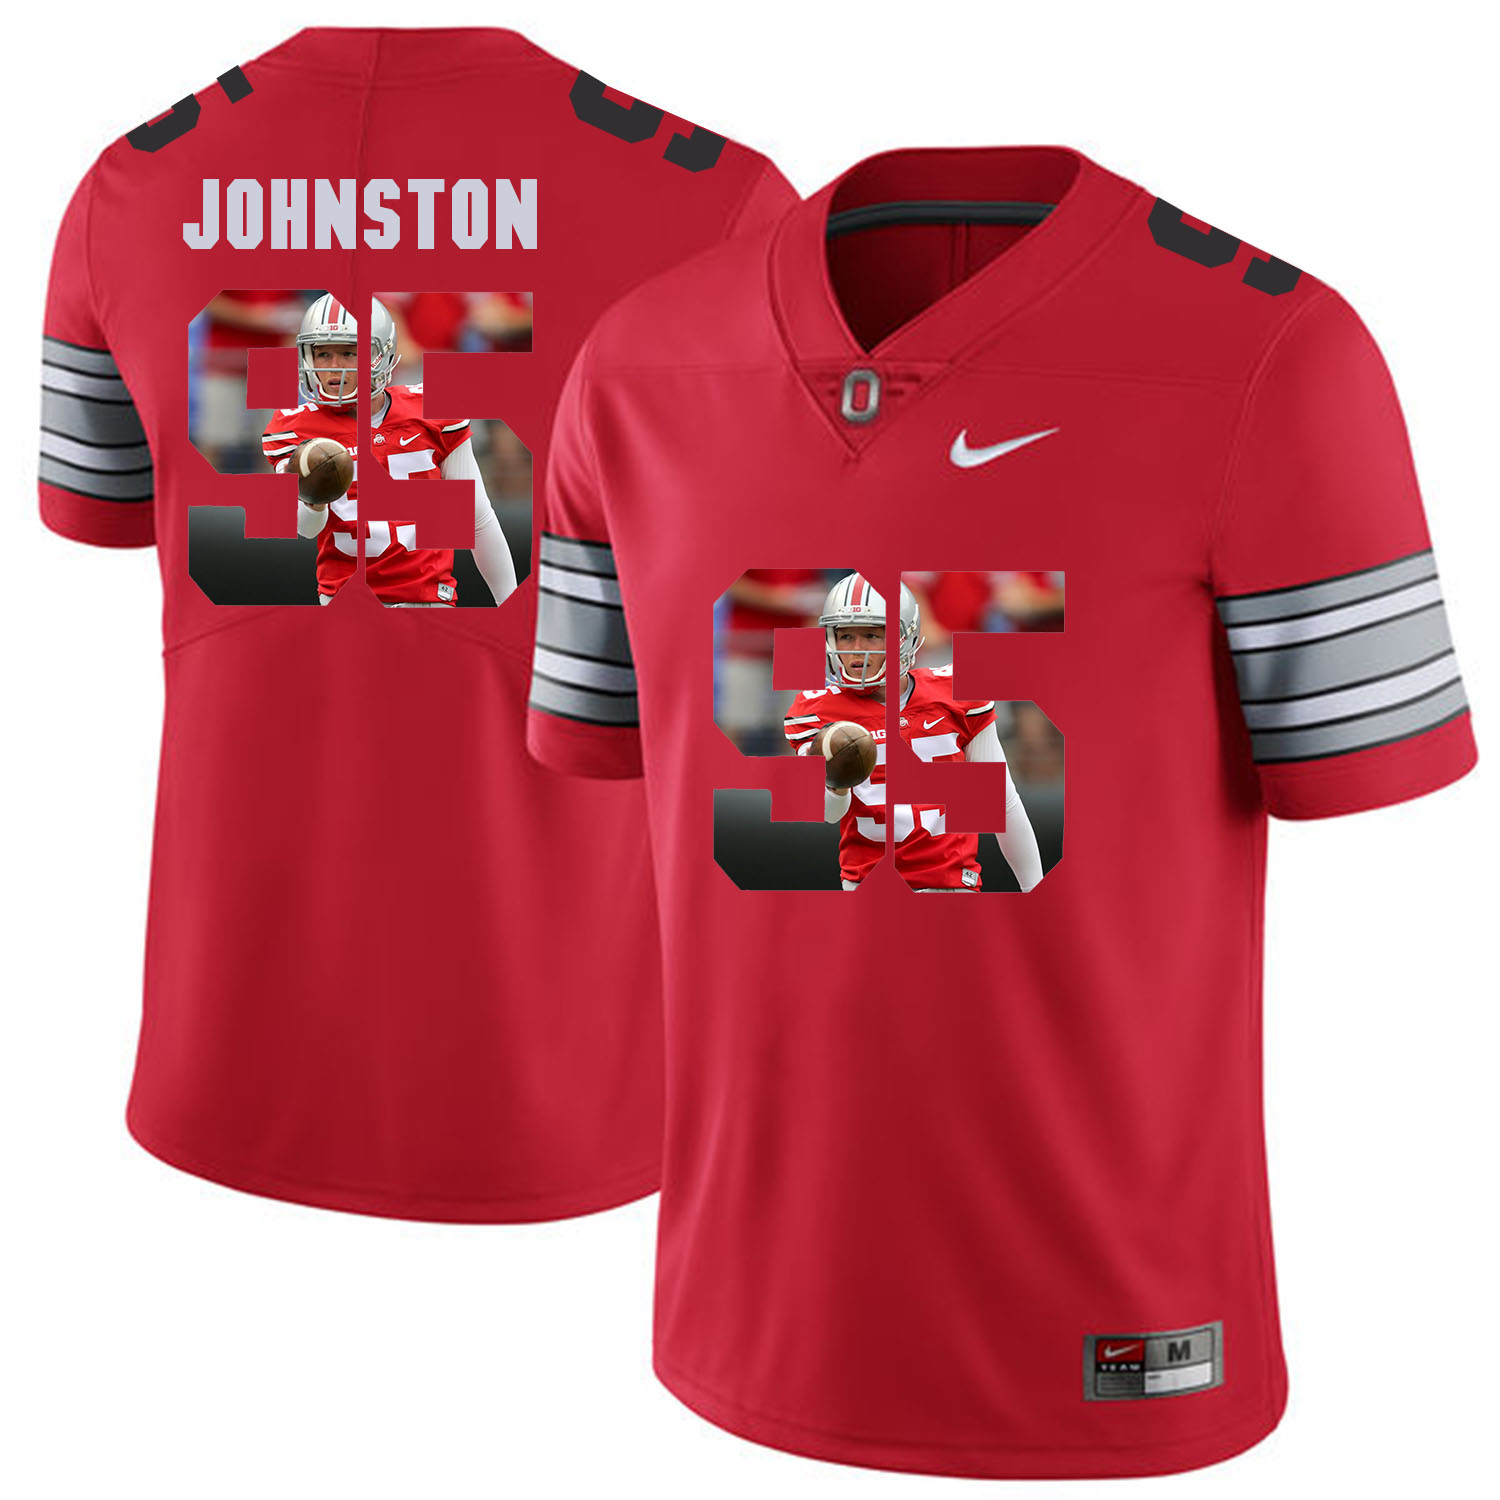 Men Ohio State 95 Johnston Red Fashion Edition Customized NCAA Jerseys